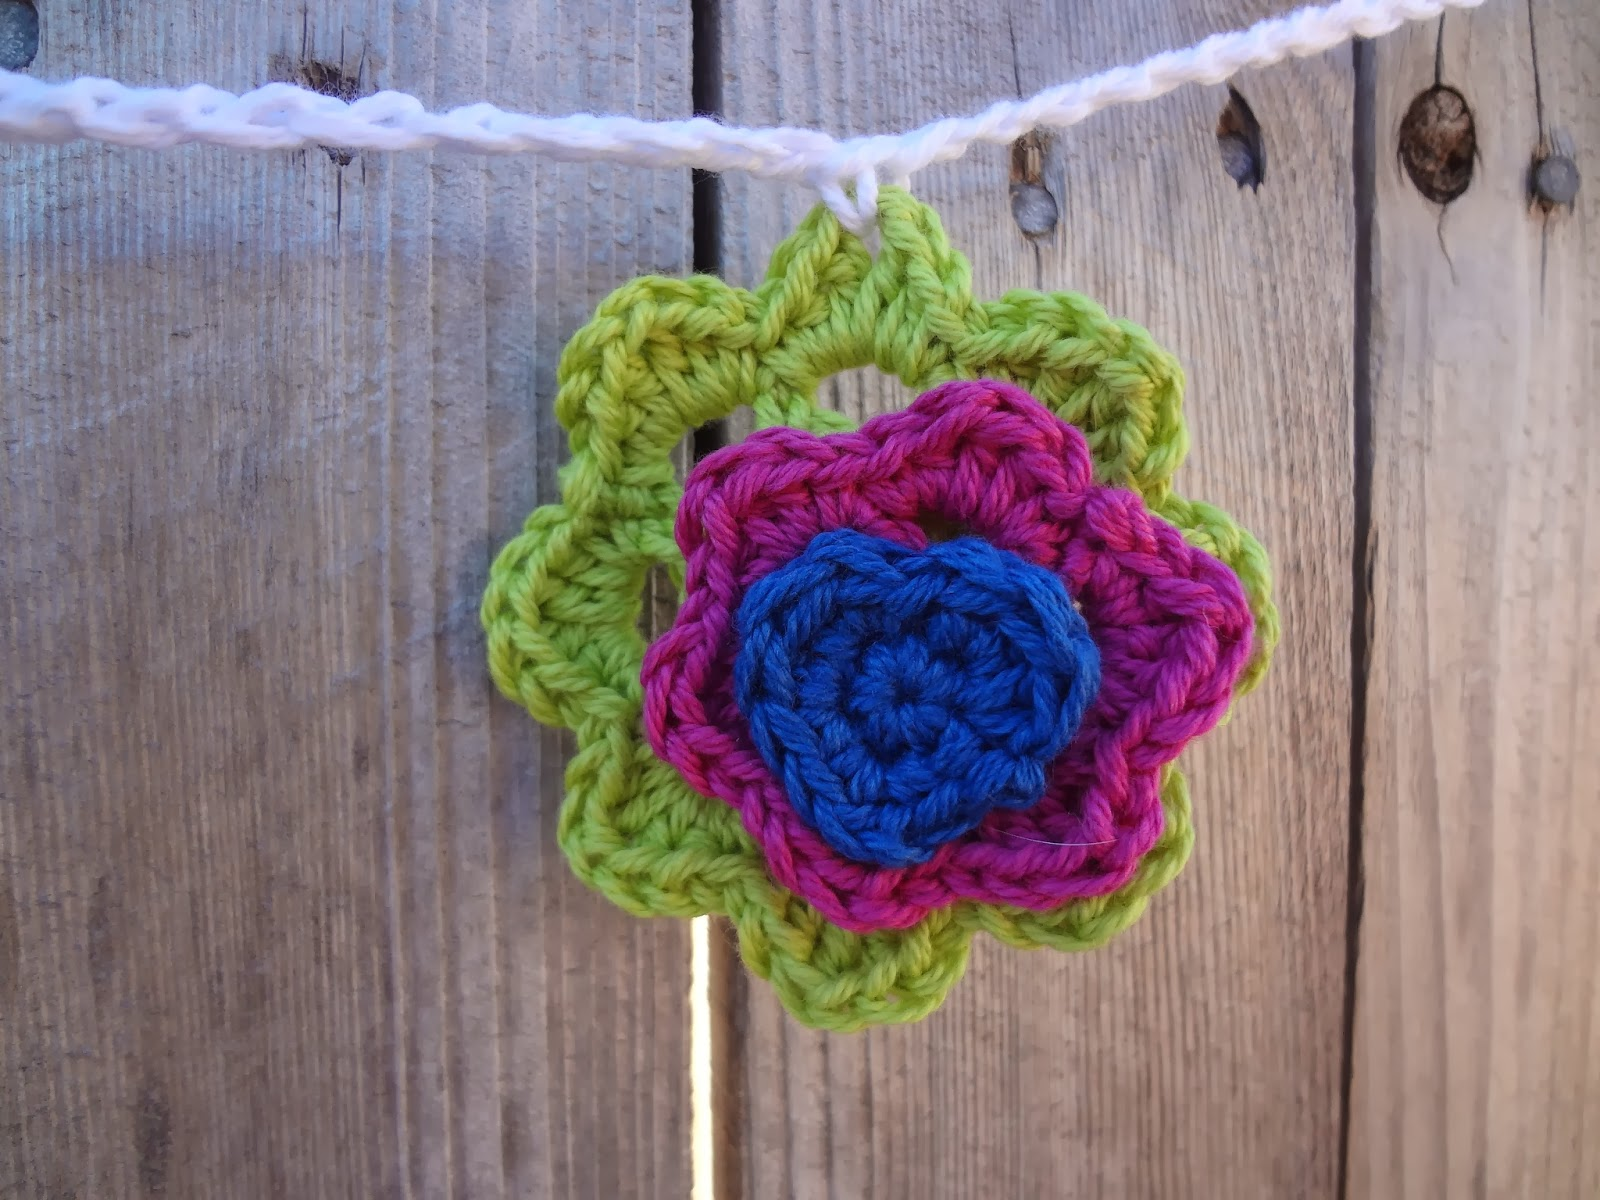 Layered crochet flower in bright green, fuchsia, and cobalt blue, attached to a white string as part of a garland.